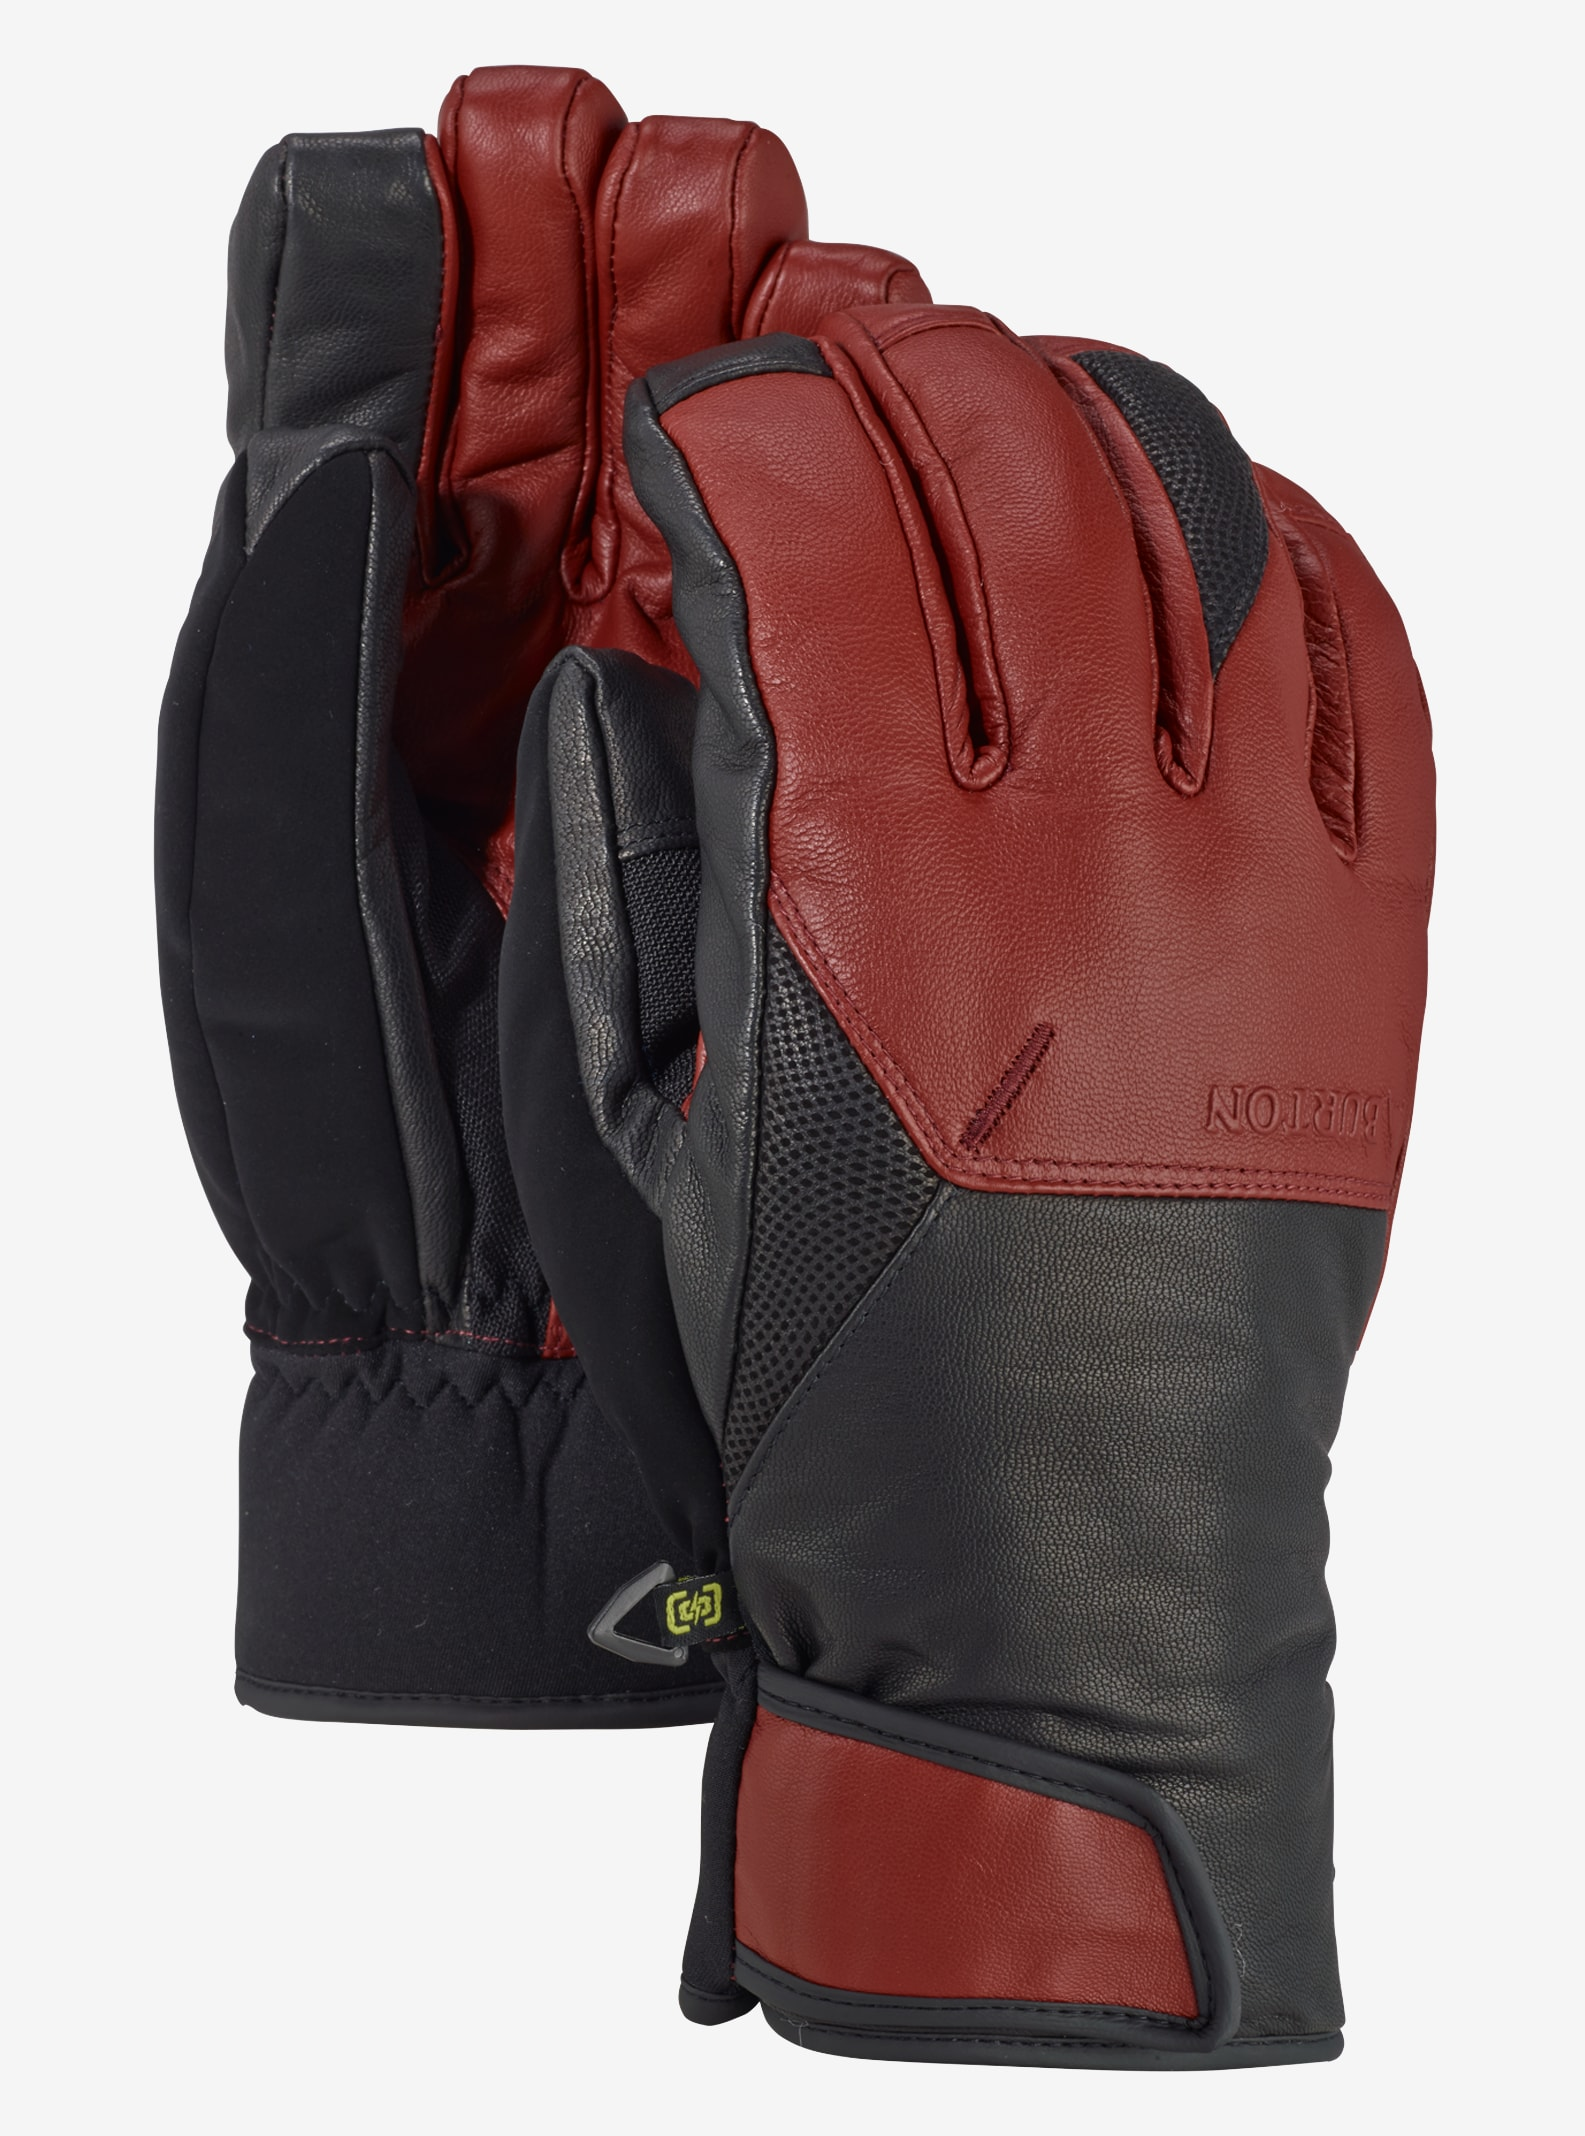 Men's Burton Gondy GORE-TEX® Leather Glove shown in Fired Brick